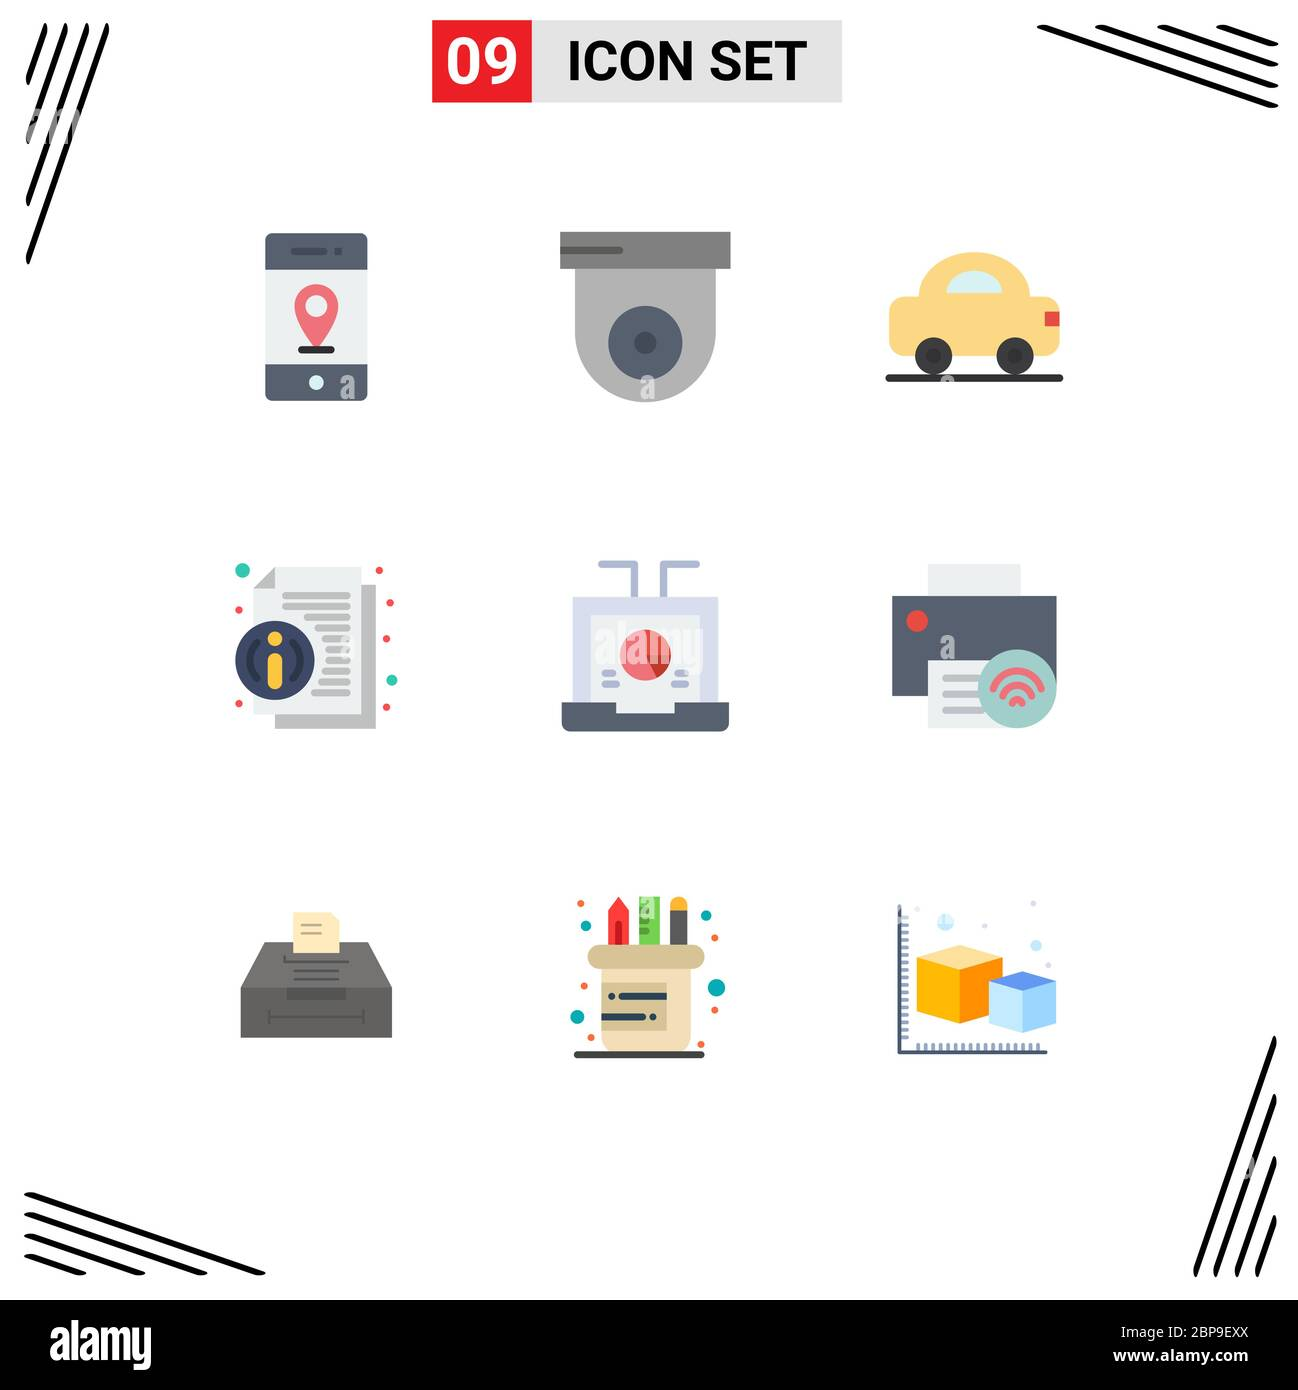 9 Flat Color Concept For Websites Mobile And Apps Laptop Business Car News Info Editable Vector Design Elements Stock Vector Image Art Alamy